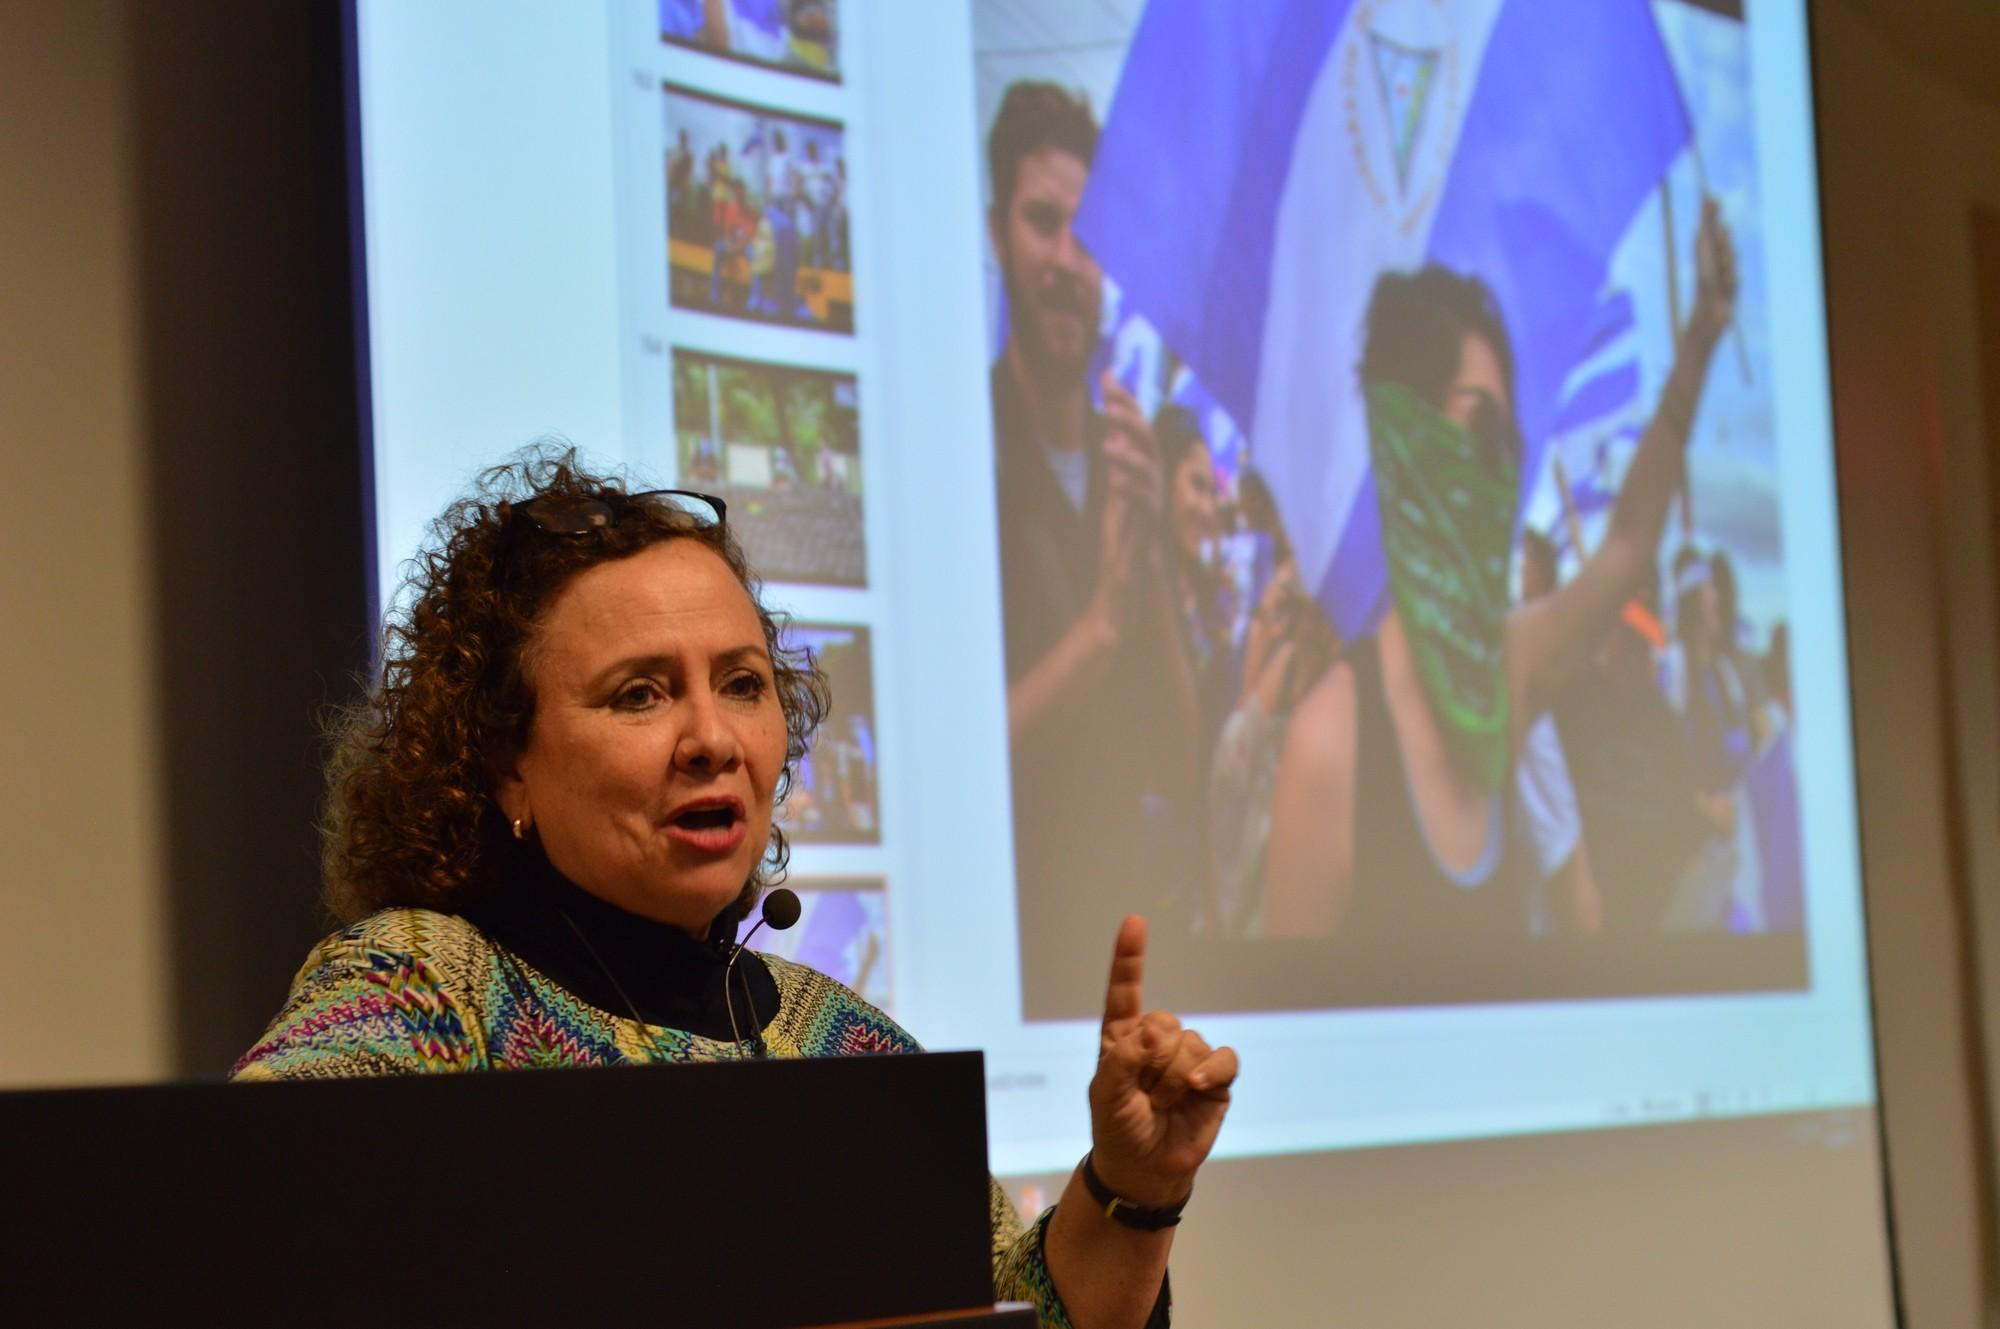 Photojournalist Margarita Montealegre presents her photographs from Nicaragua and other Central American countries at the Oviatt Library on March 29. Many of her photos show important events that happened during both the Nicaraguan and Salvadorian civil wars. Photo credit: Geovanni Botticella